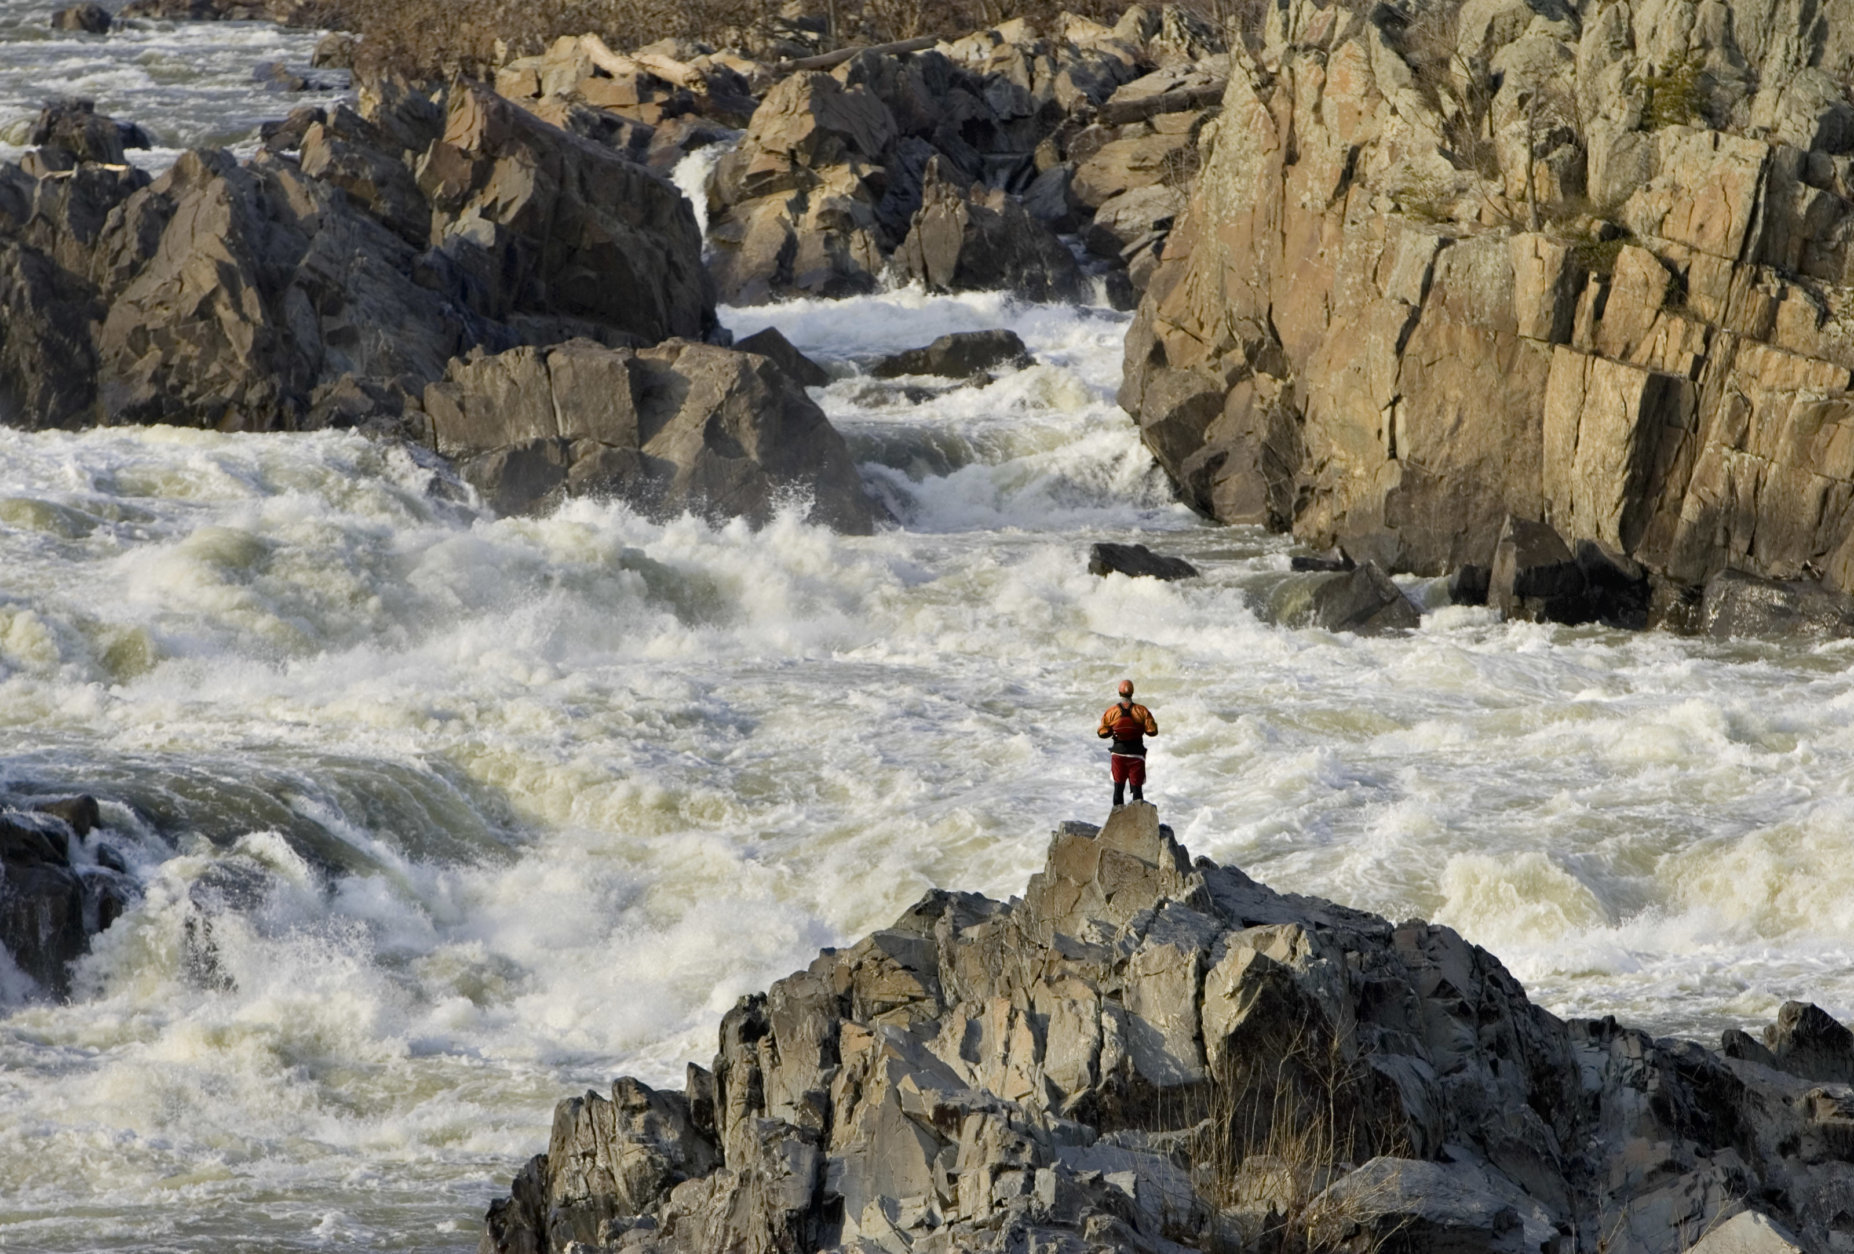 A kayaker enjoys the rushing waters of the  Potomac River at Great Falls, Va., near Washington, Tuesday, March 25, 2008. (AP  Photo/J. Scott Applewhite)